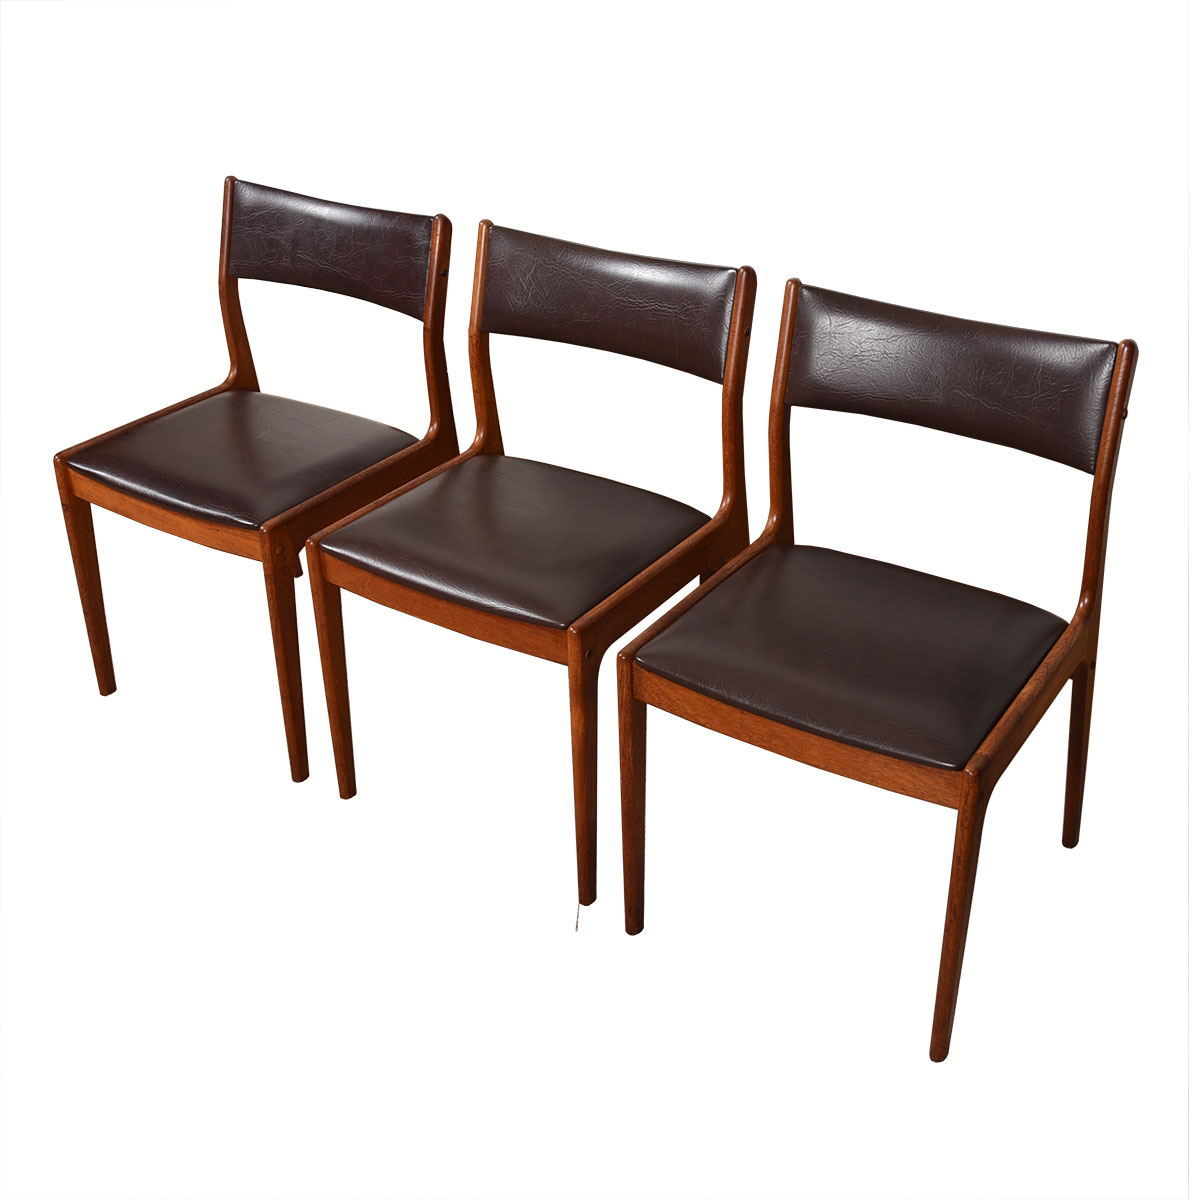 Set of 3 Uldum Danish Modern Dark Brown + Teak Side Dining Chairs